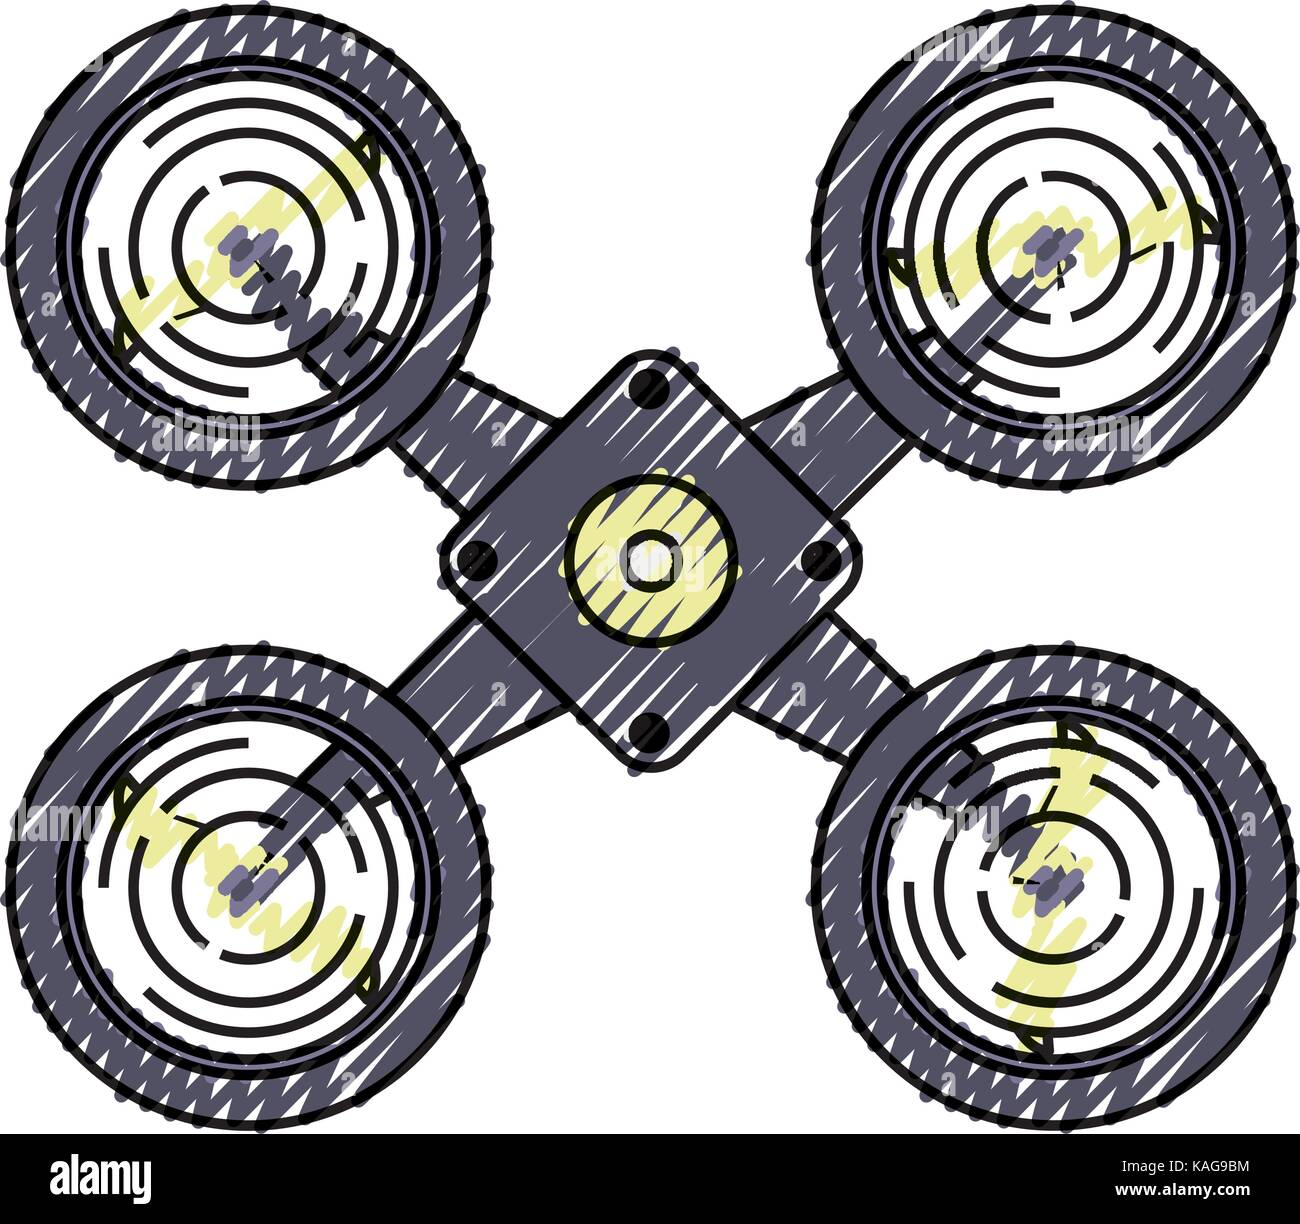 Aerial Photo Stock Vector Images - Alamy